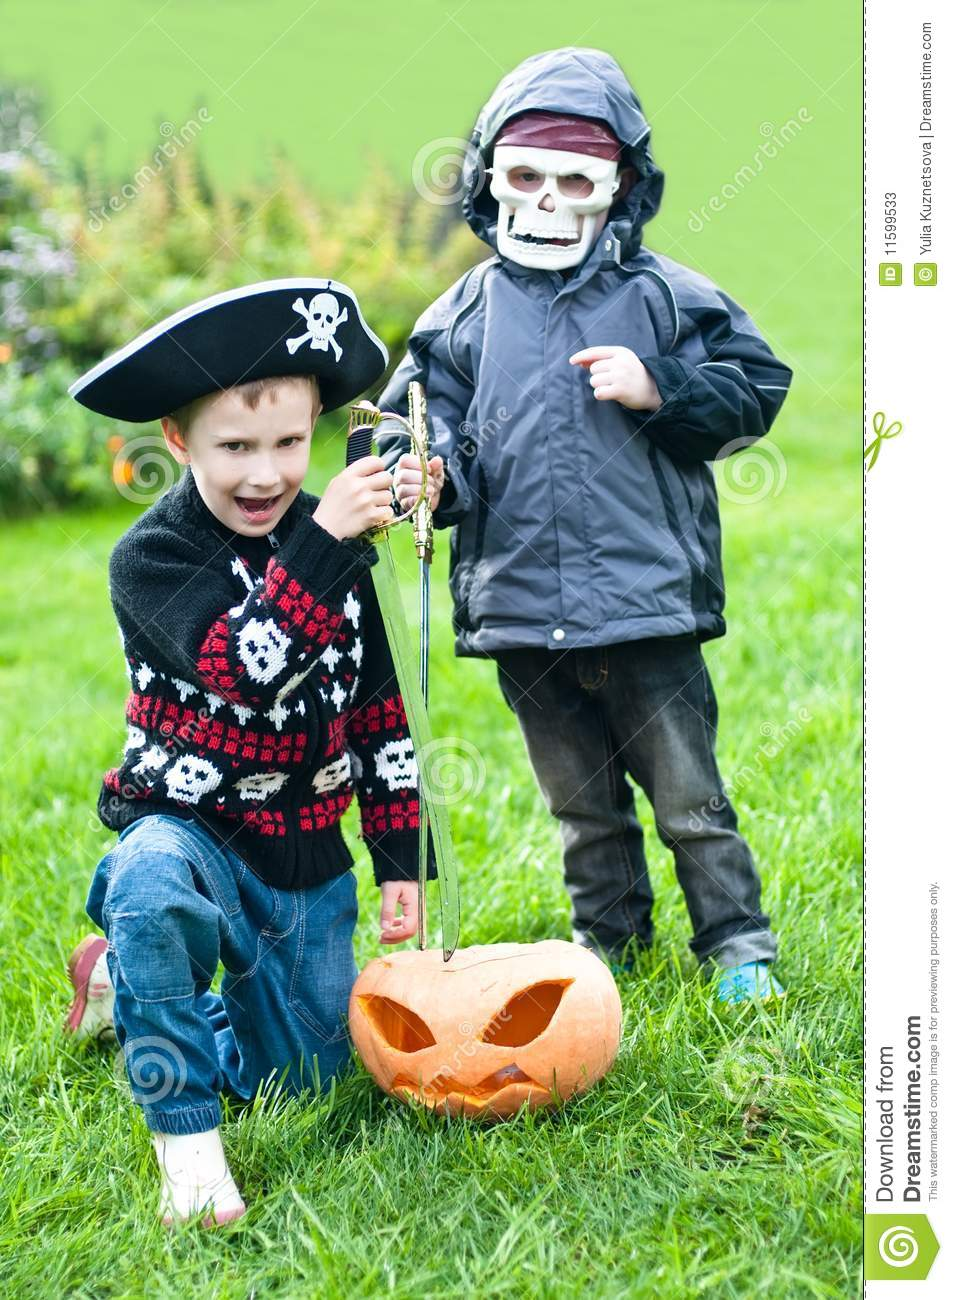 Two boys wearing halloween costumes